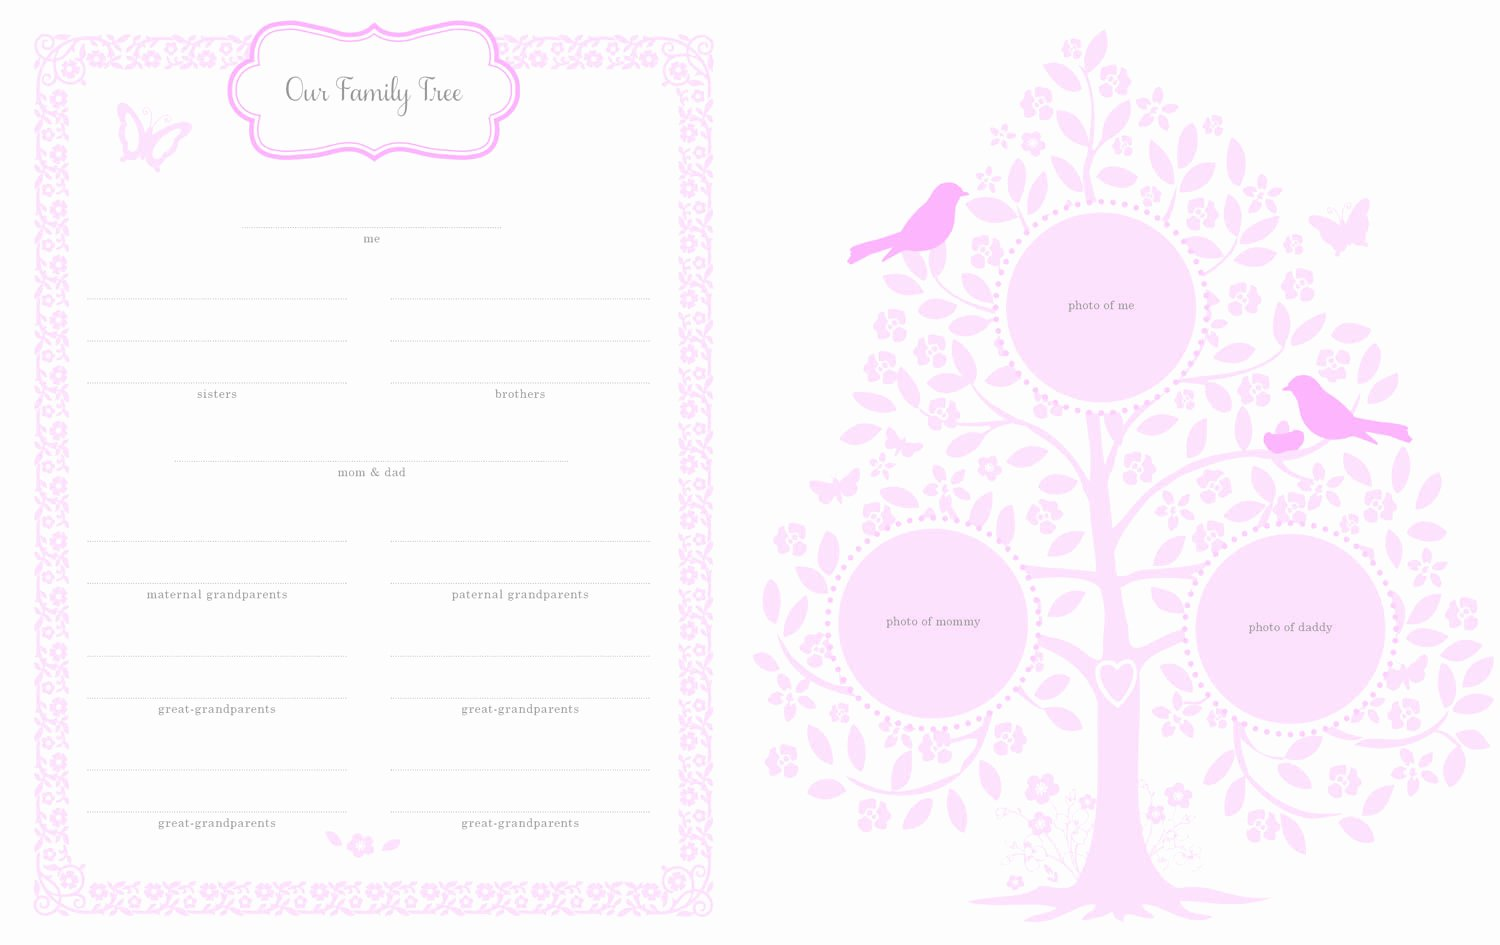 Baby Book Template Pages Inspirational Baby Book In the Making